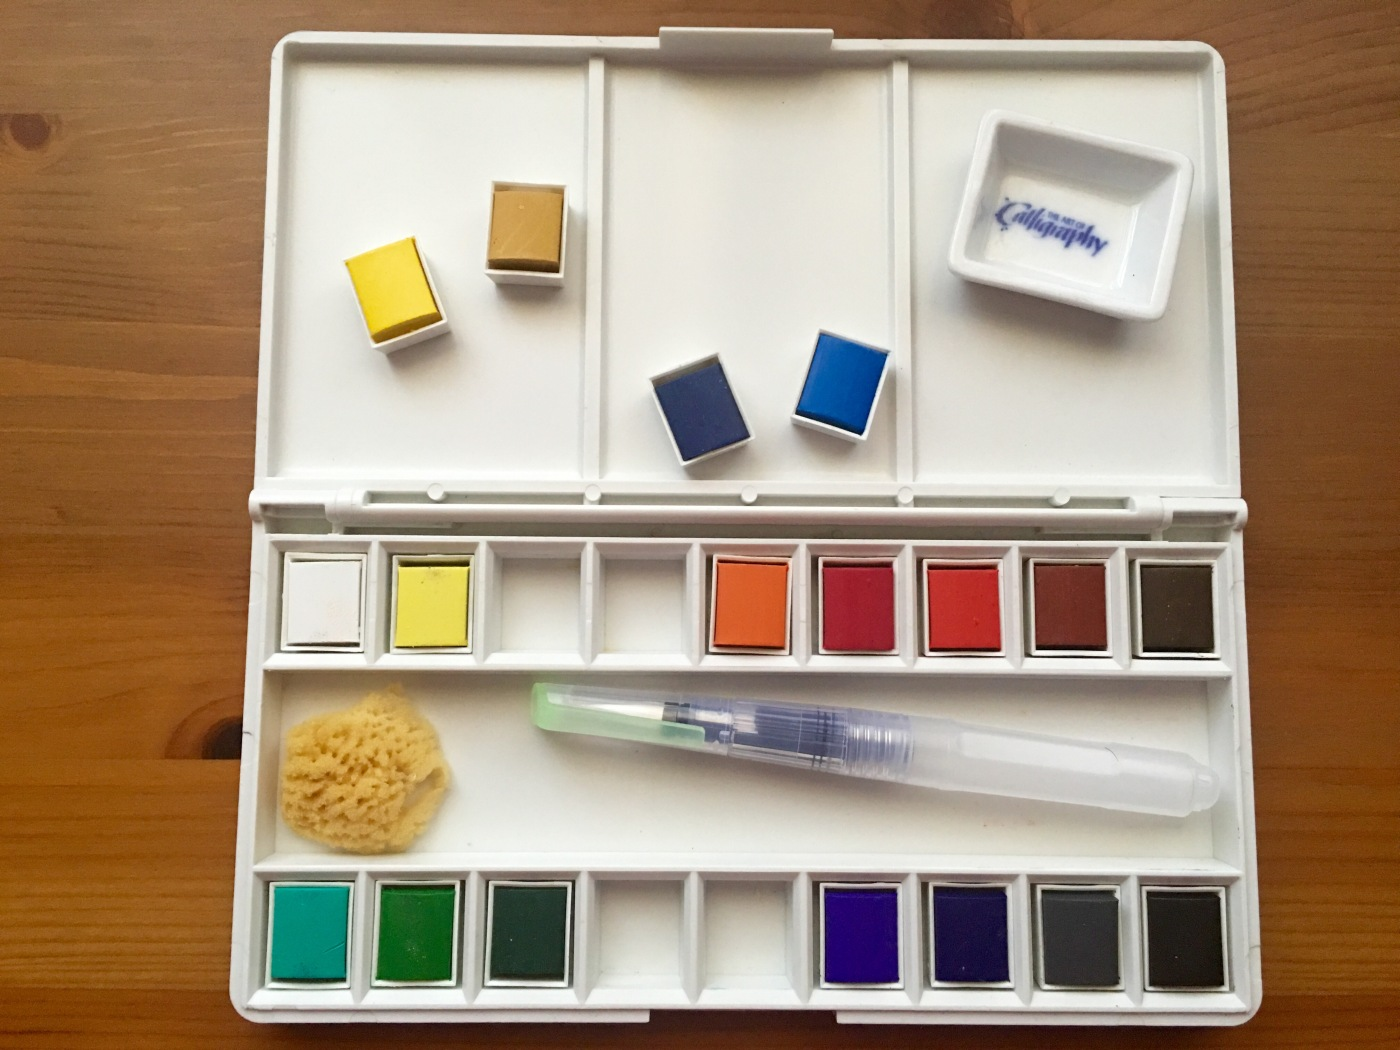 Grace Art Model 118 18-piece Water Colors Field Sketch Set with Brush with pans removed